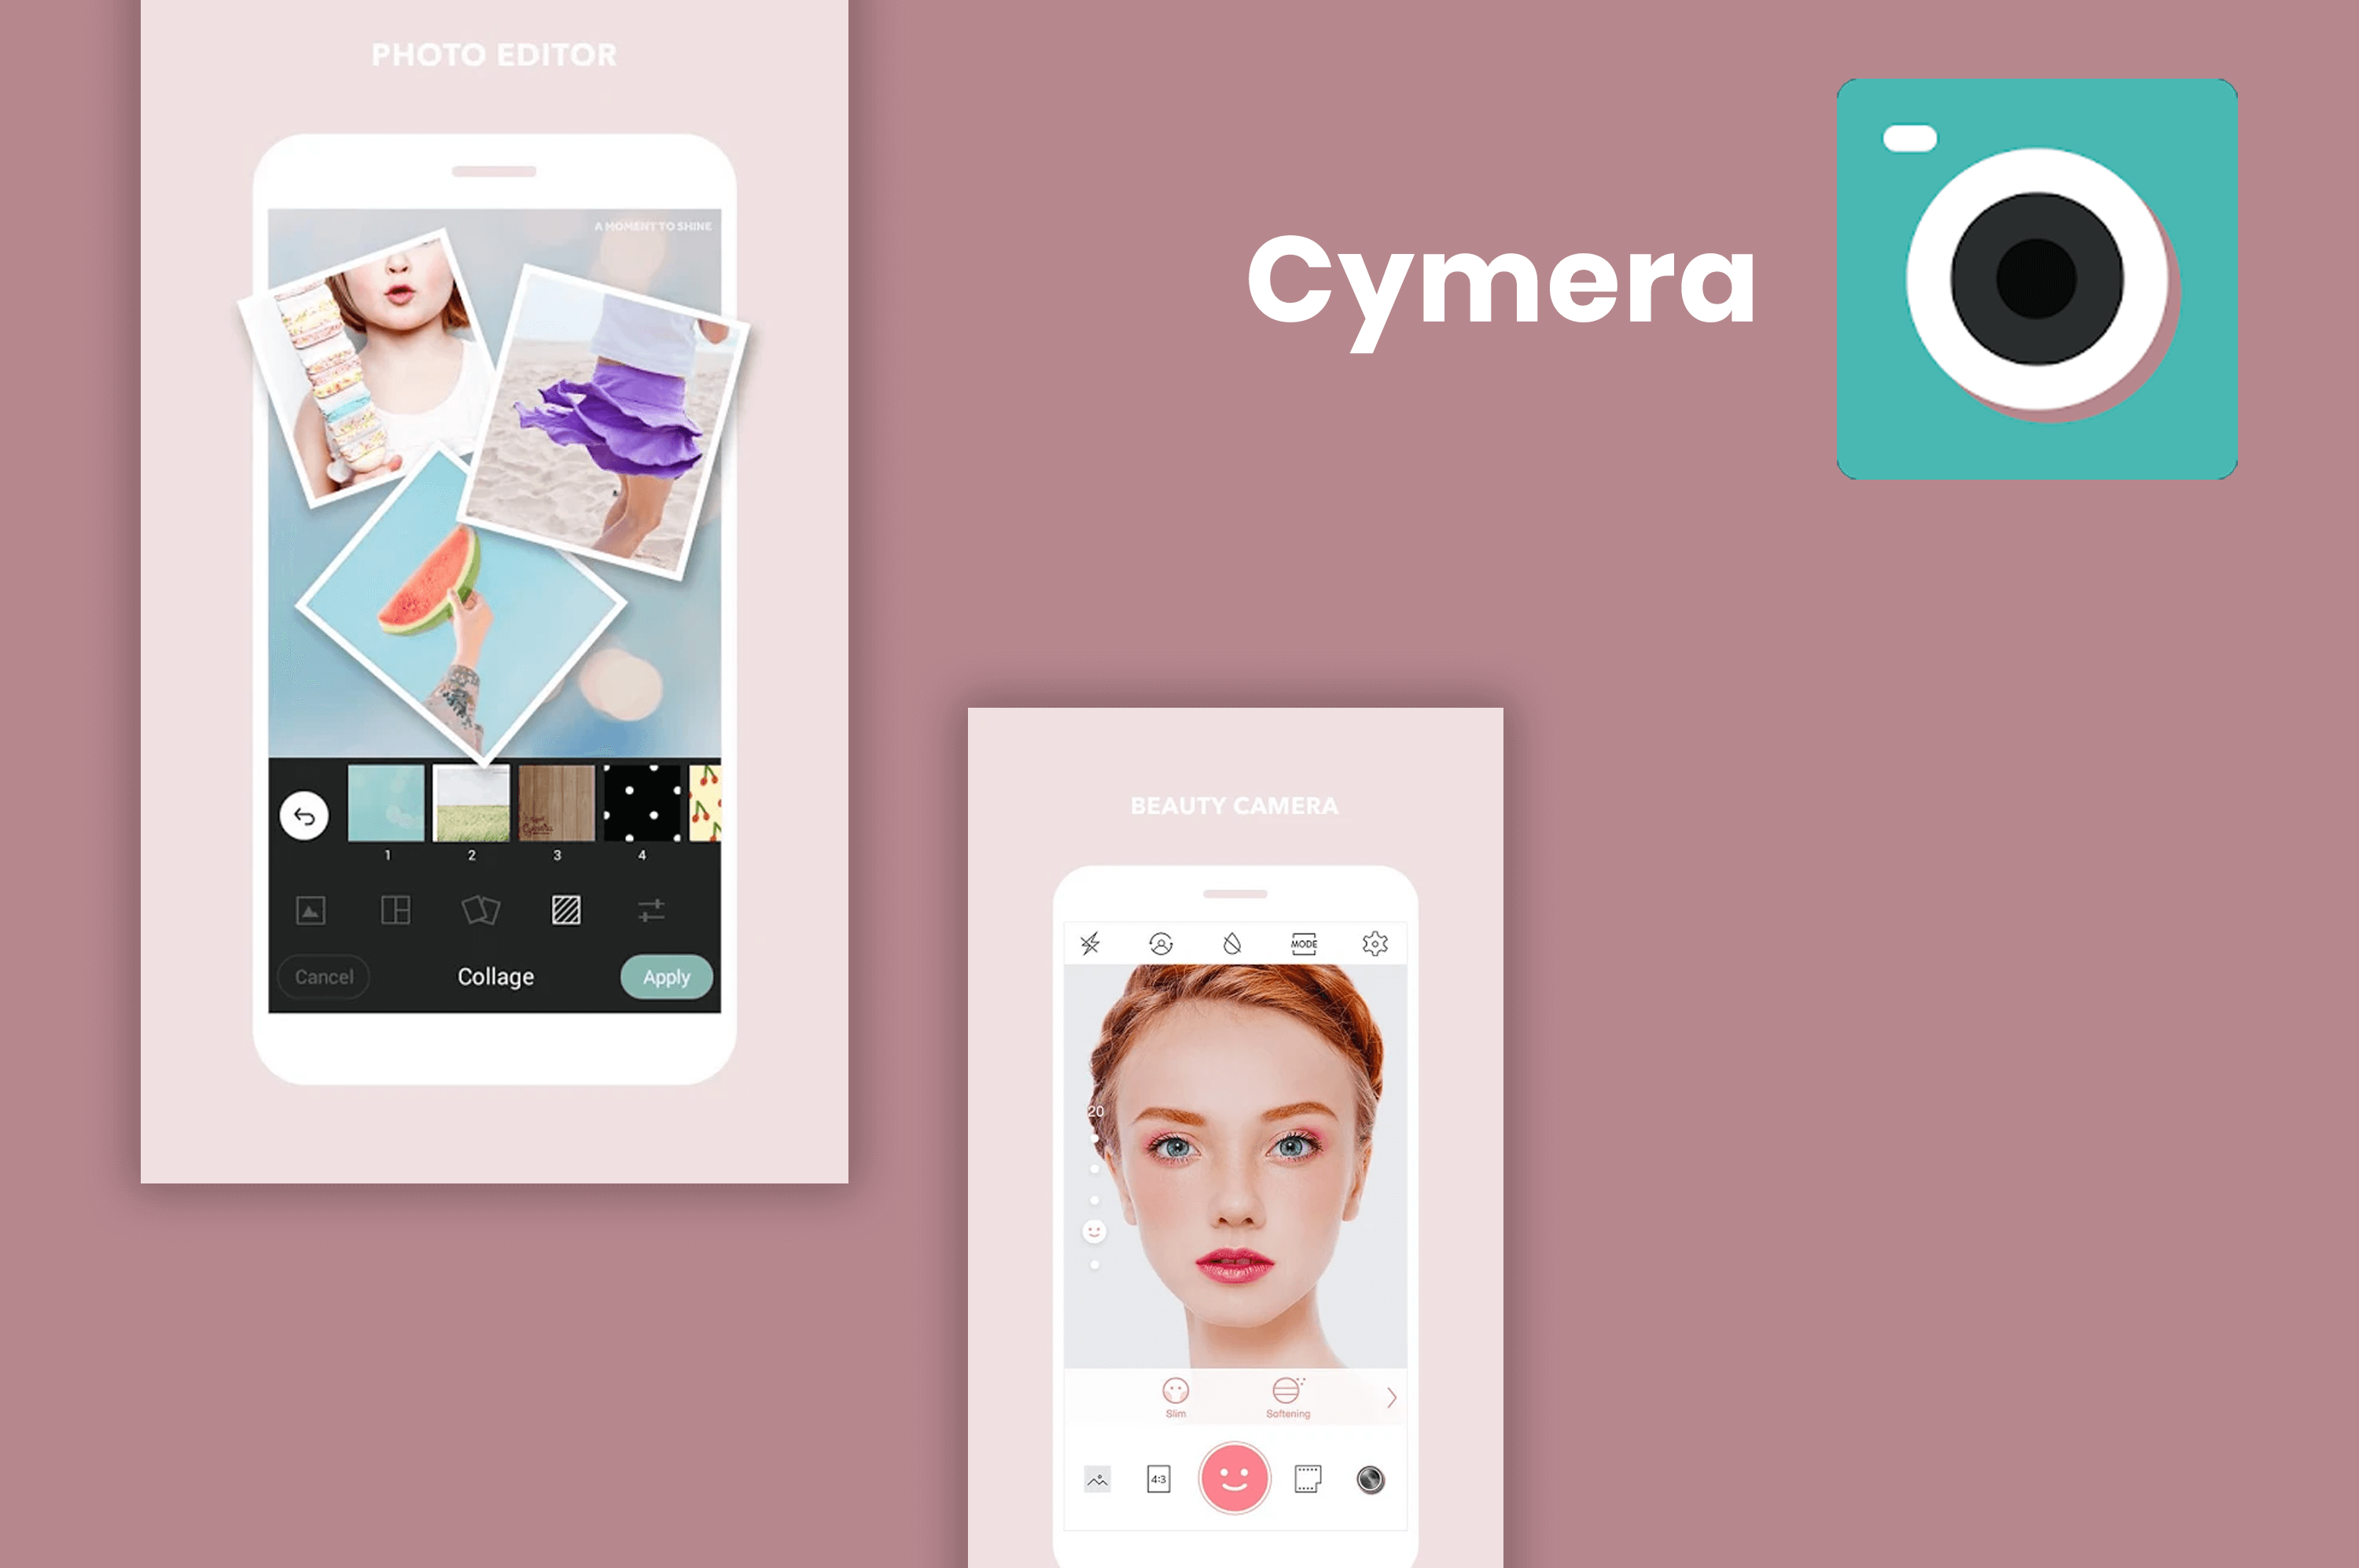 cymera app screens